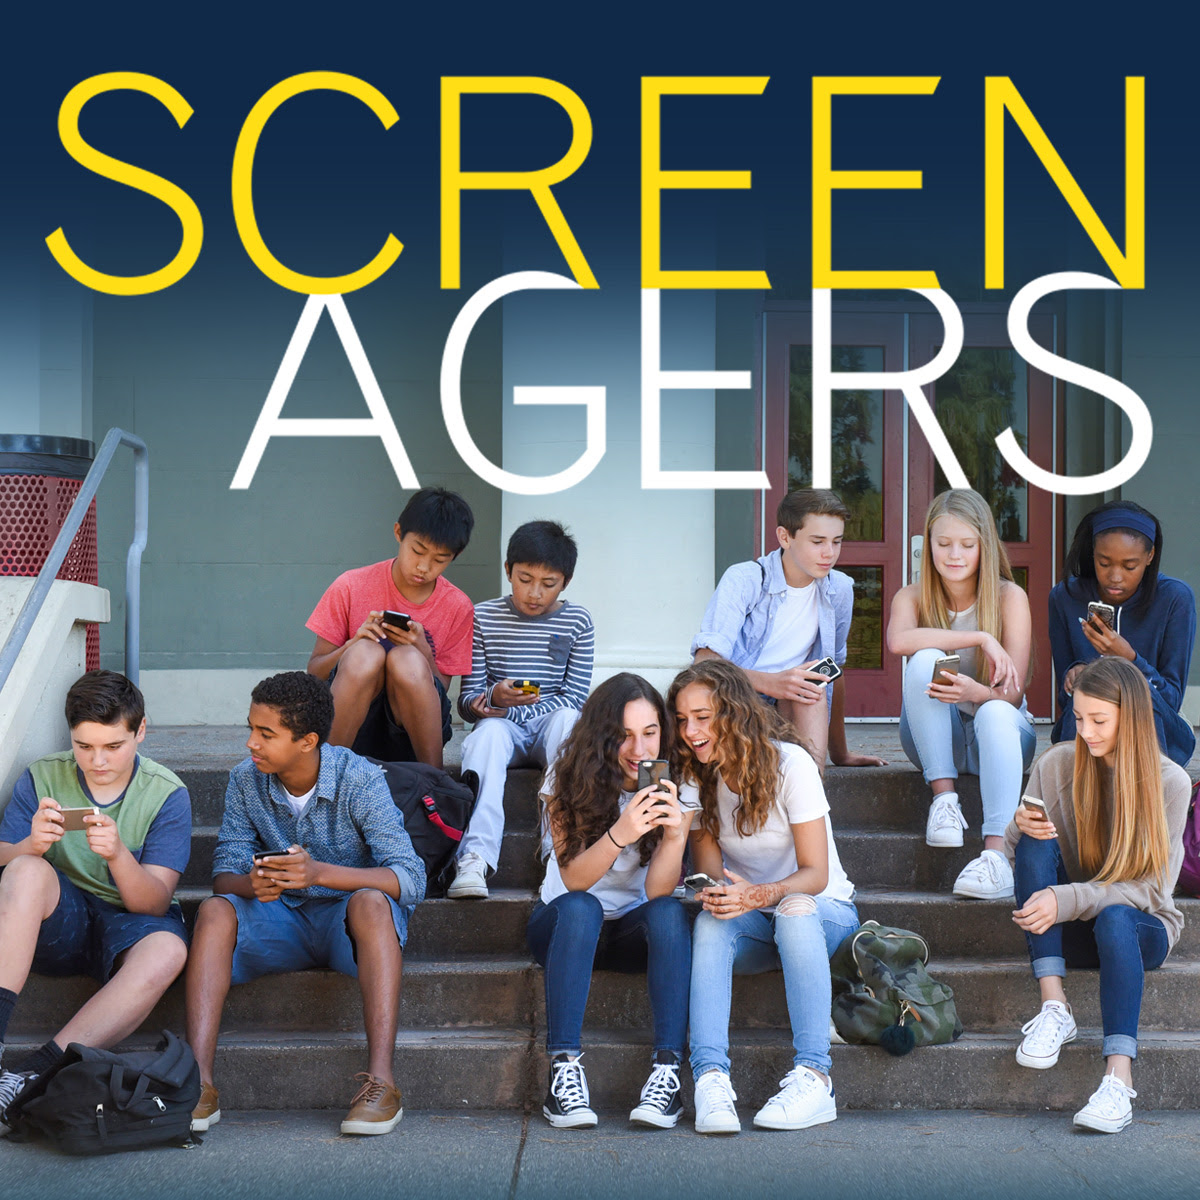 Screenagers Film Presented By Milltown School District